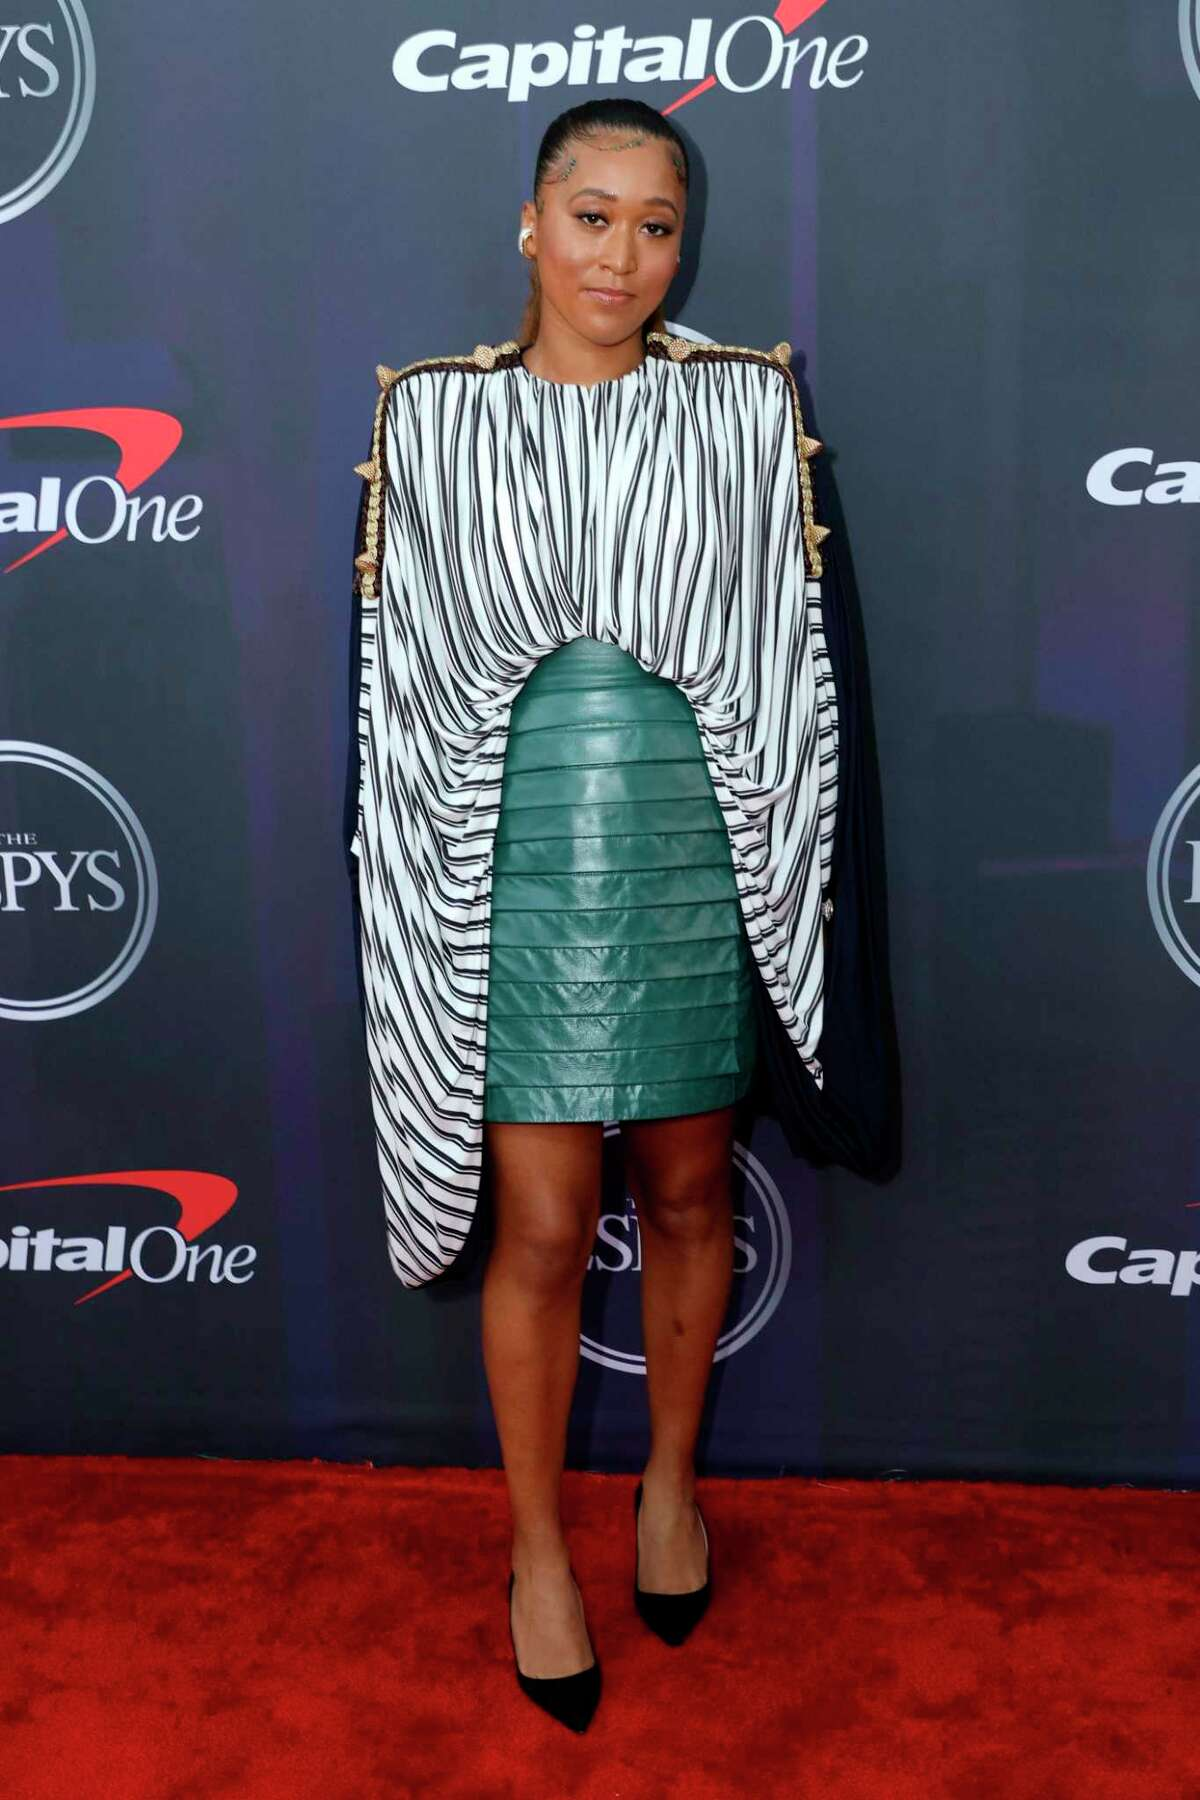 Naomi Osaka attends the 2021 ESPY Awards at Rooftop At Pier 17 on July 10, 2021 in New York City. (Photo by Michael Loccisano/Getty Images)